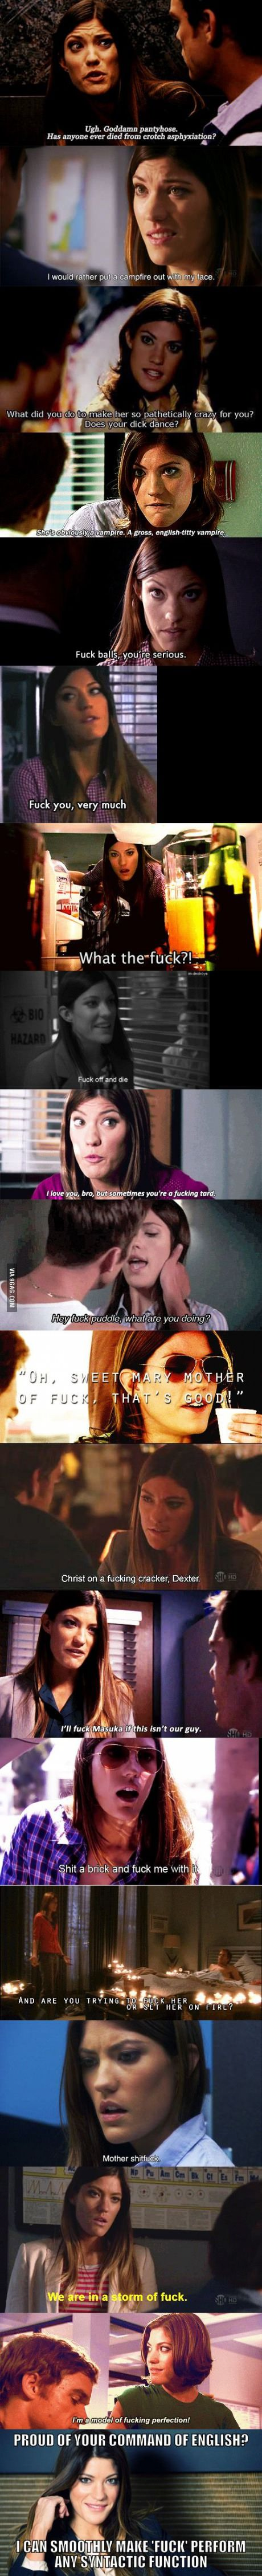 Just some Debra Morgan quotes ... Fucki you Dexter writers for ending the series the way you did!